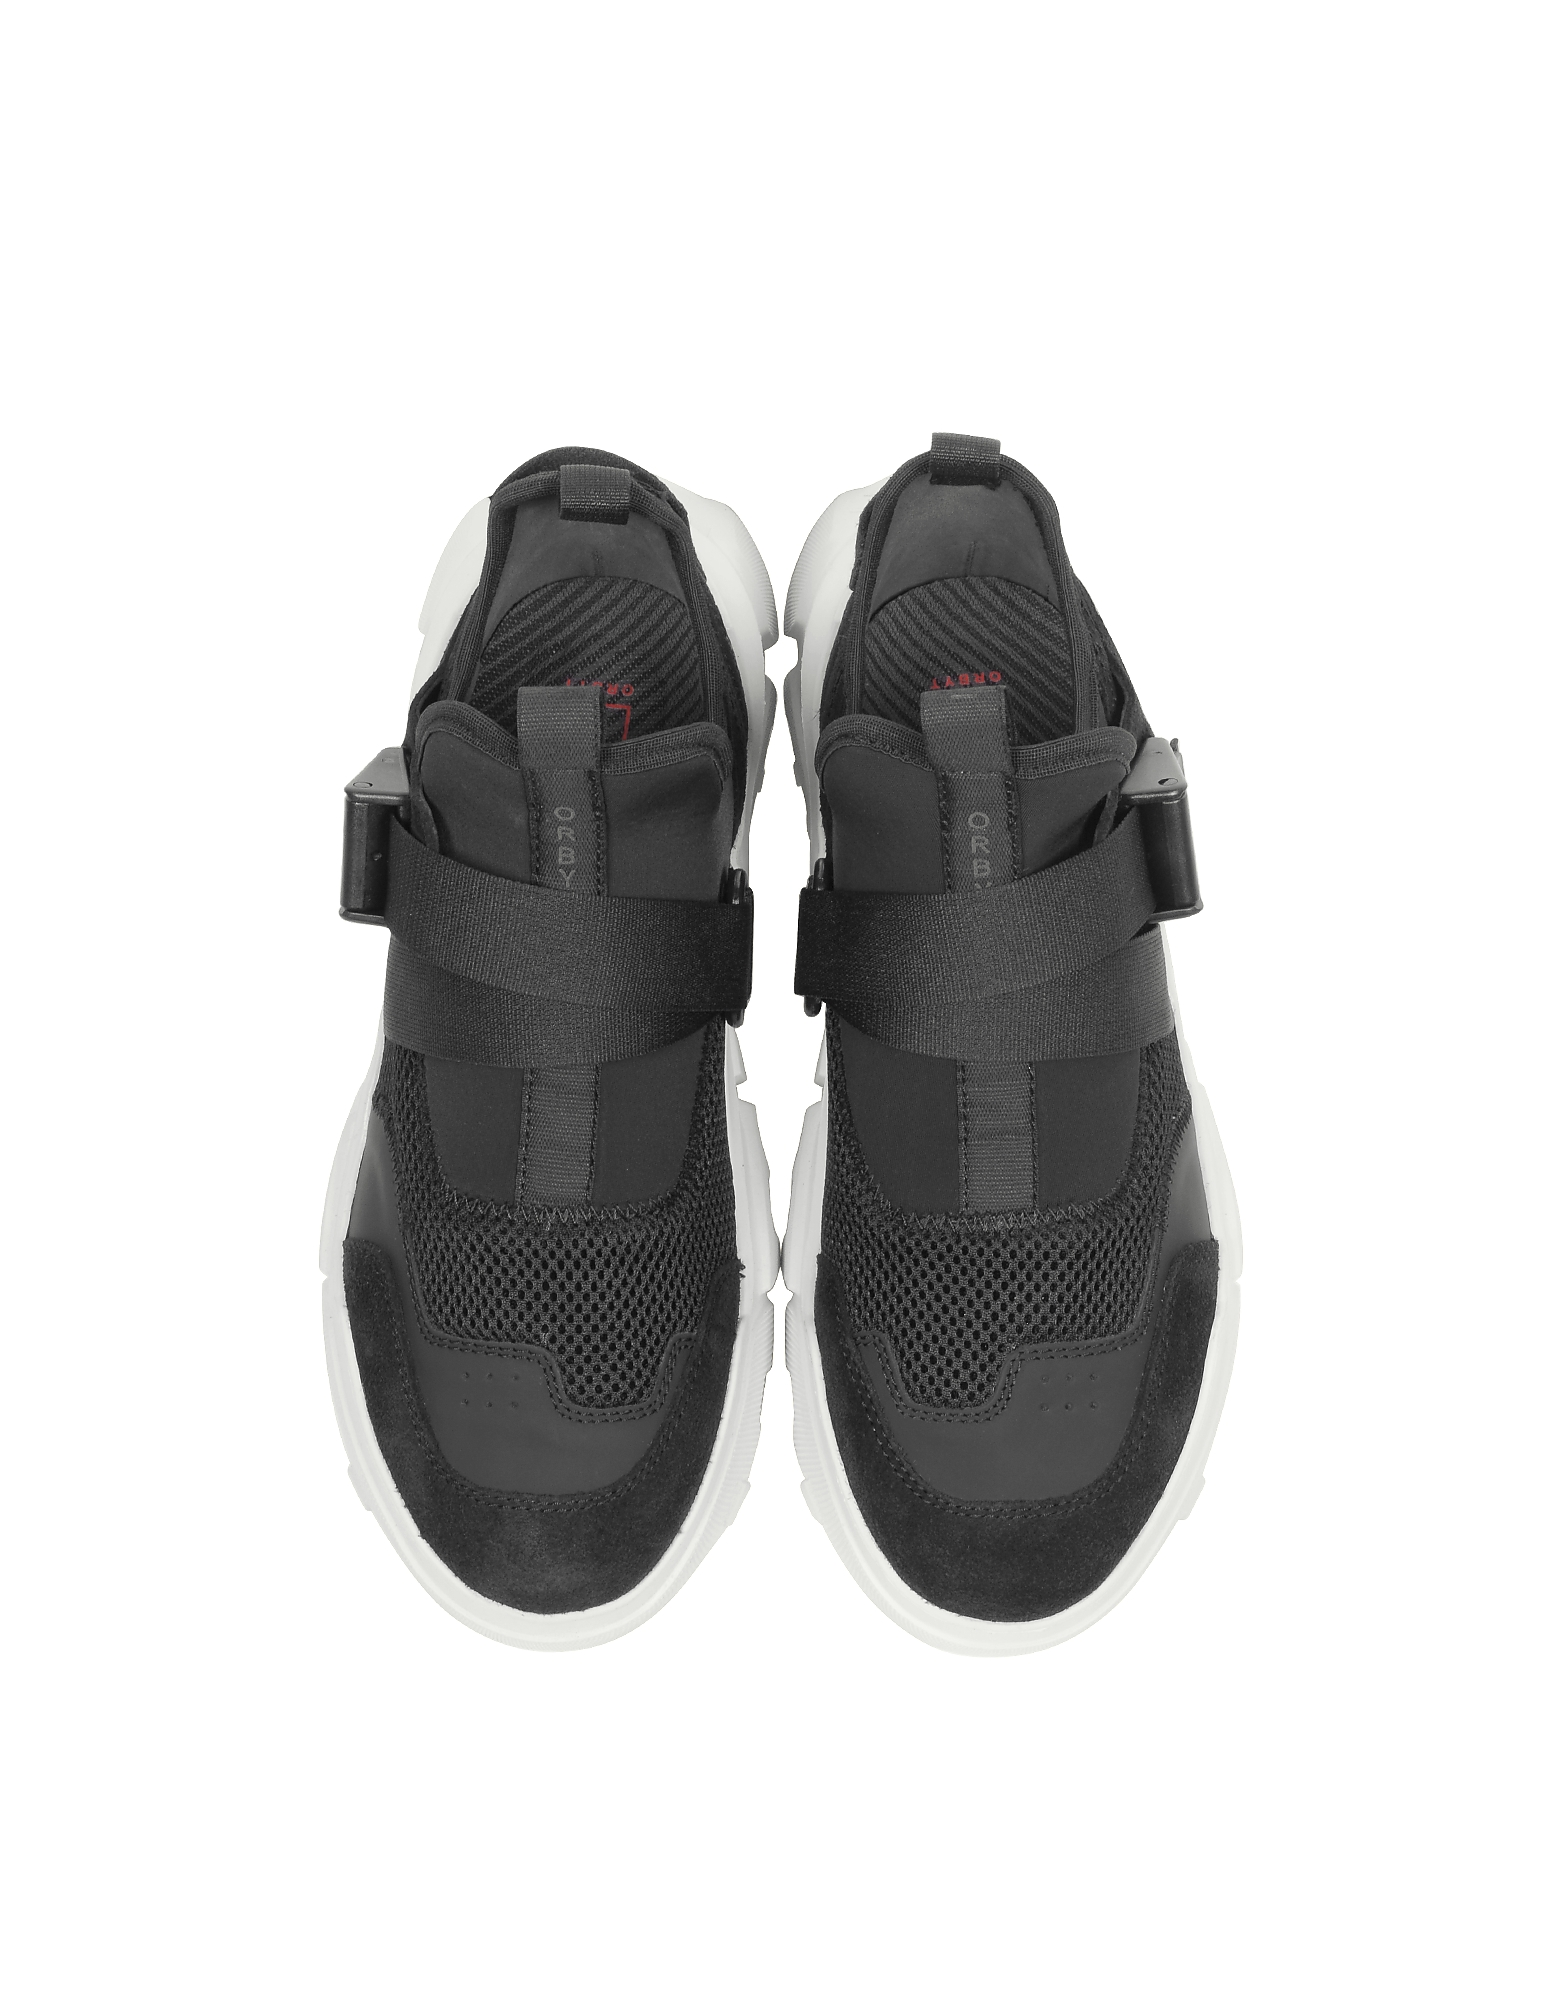 McQ Alexander McQueen / Orbit Clip Black Leather and Fabric  Women's Sneakers